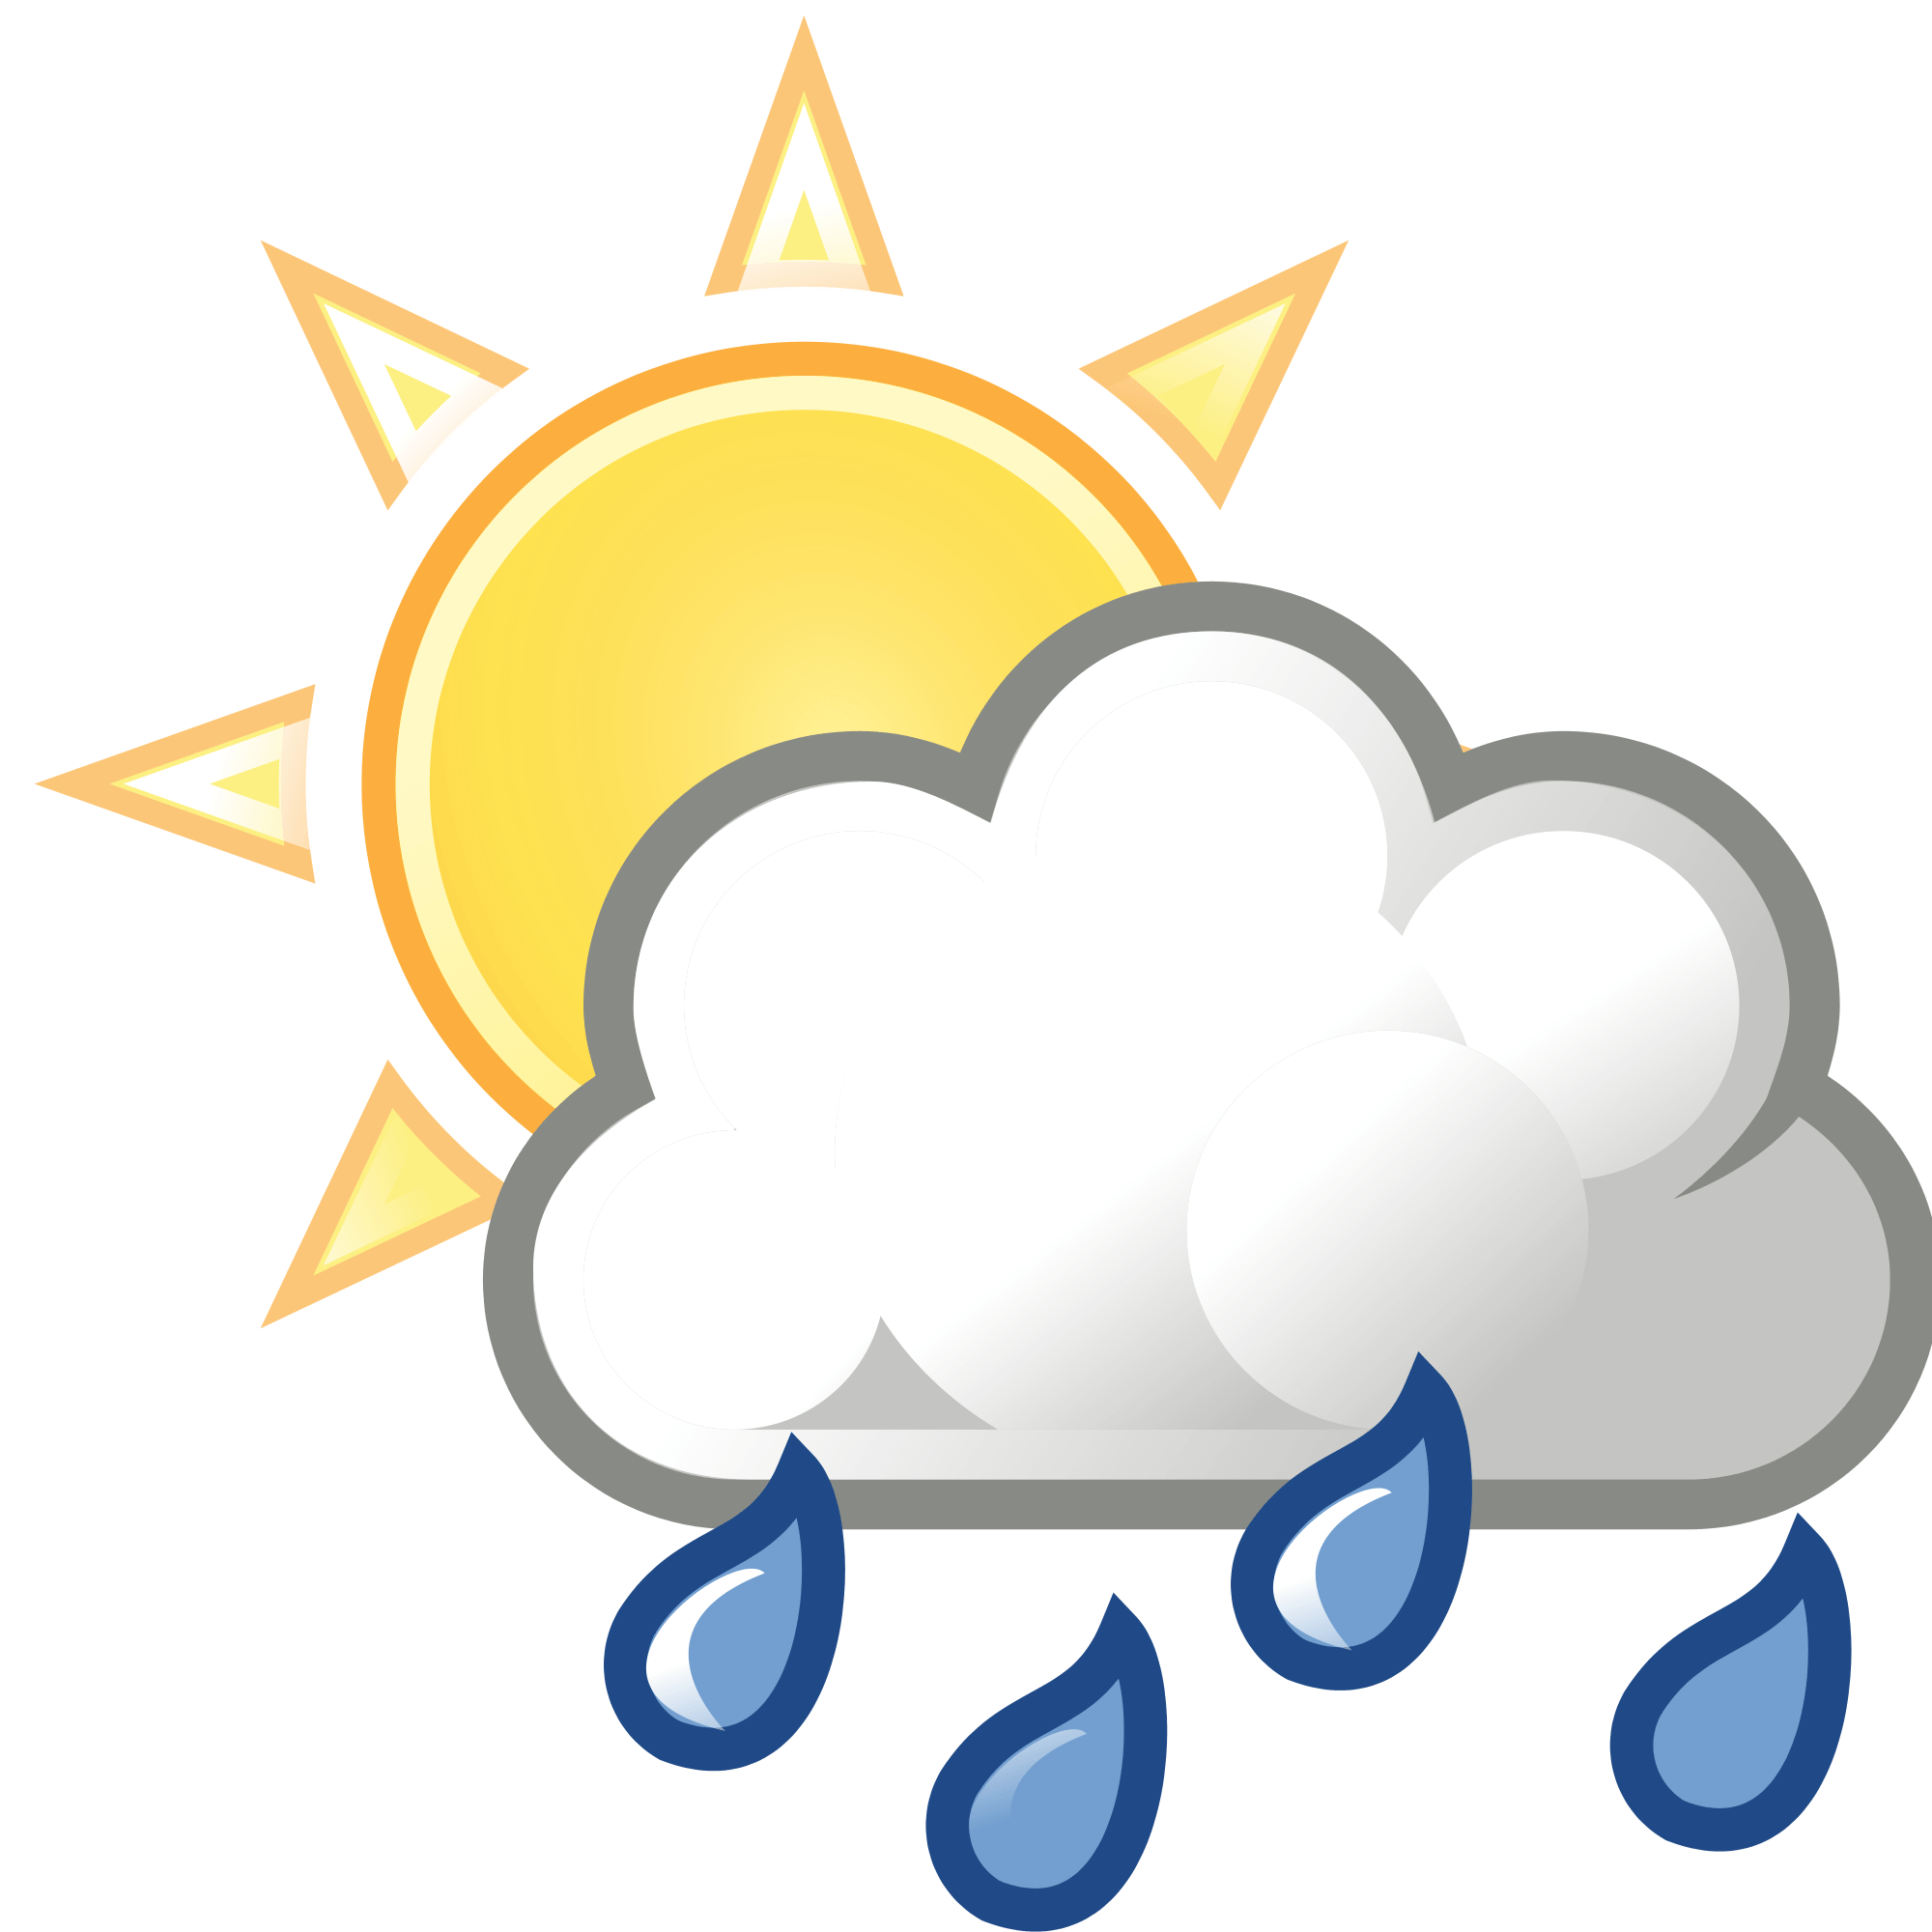 hight resolution of top clipart sun and clouds rain